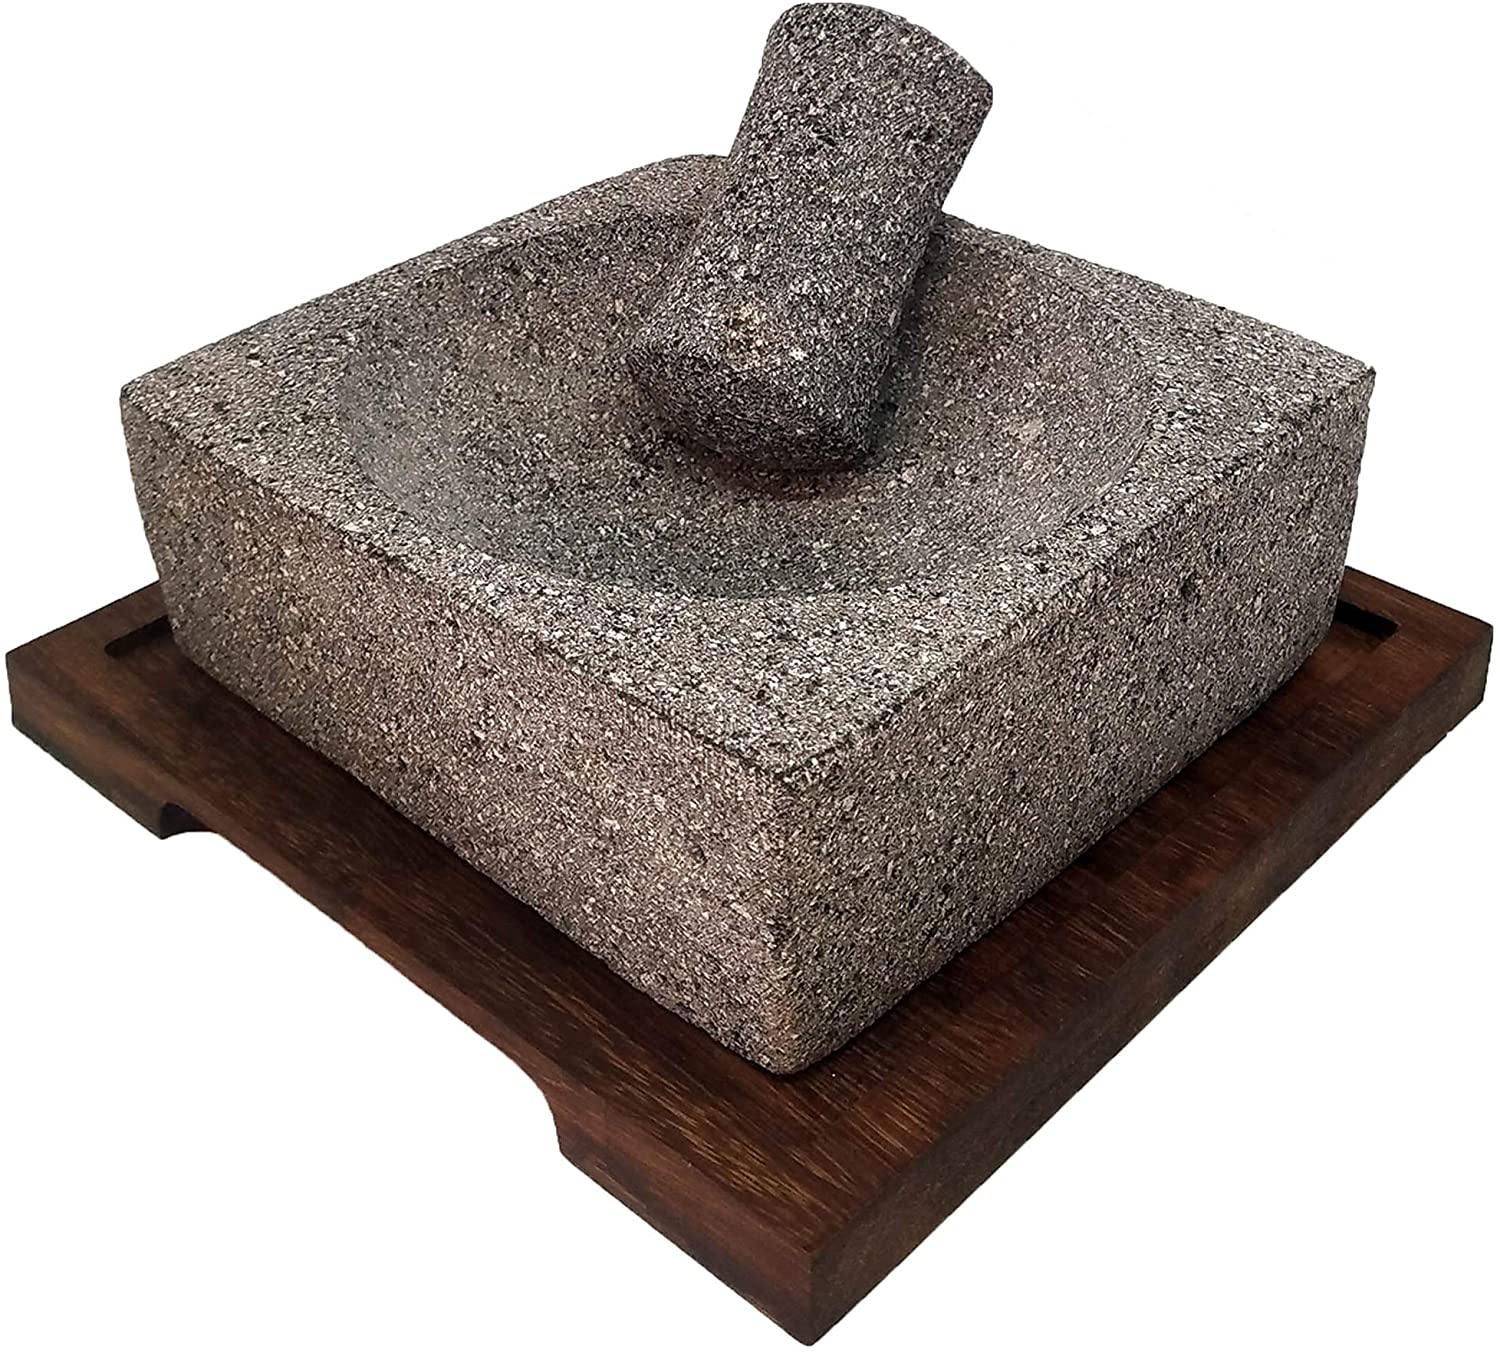 VOLCANIC ROCK PRODUCTS / 8'' Square Mortar and Pestle Set with Parota Wood Serving Board